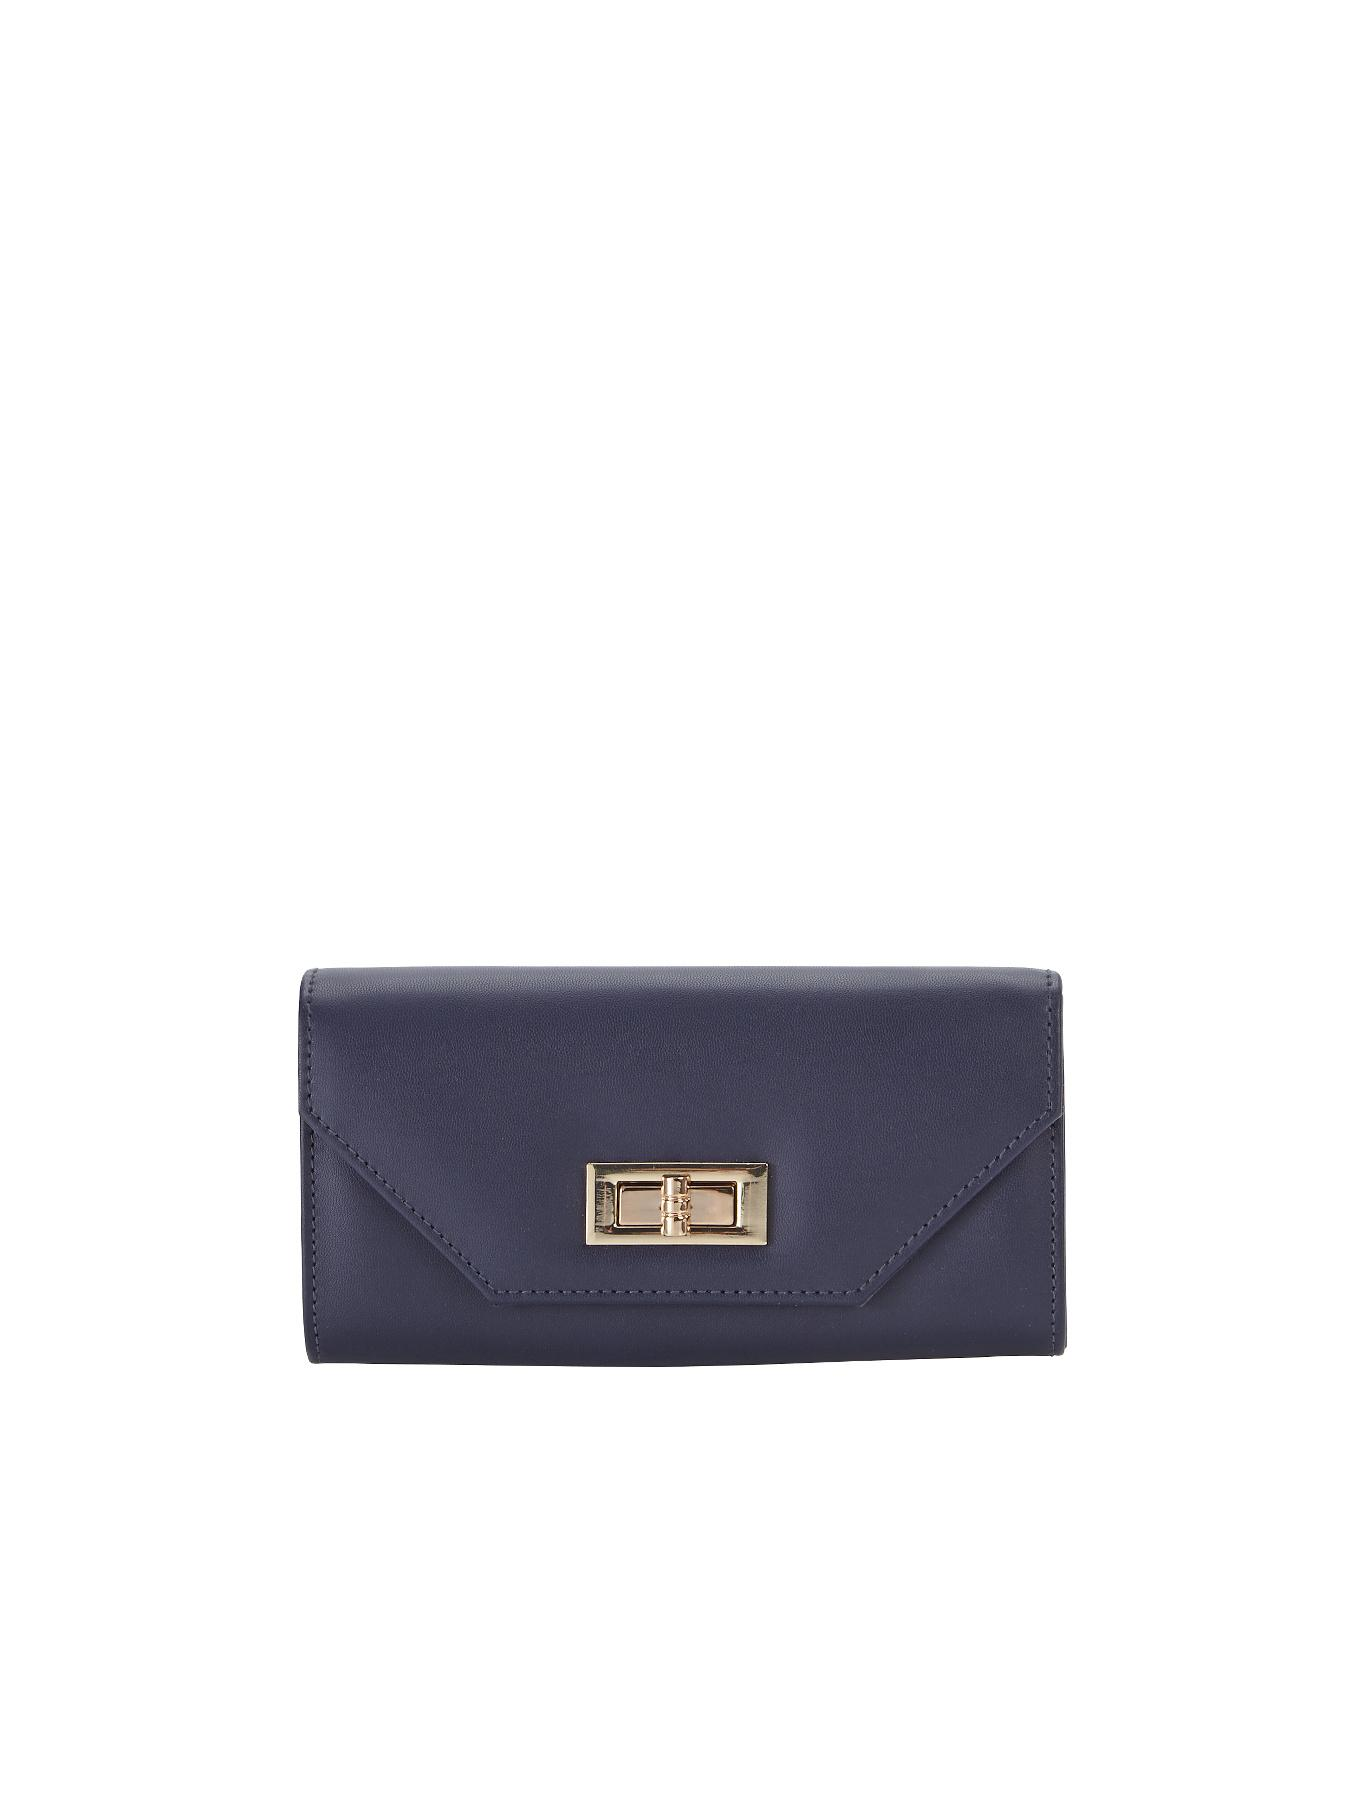 Bea Turnlock Purse, Navy,Grey at Littlewoods